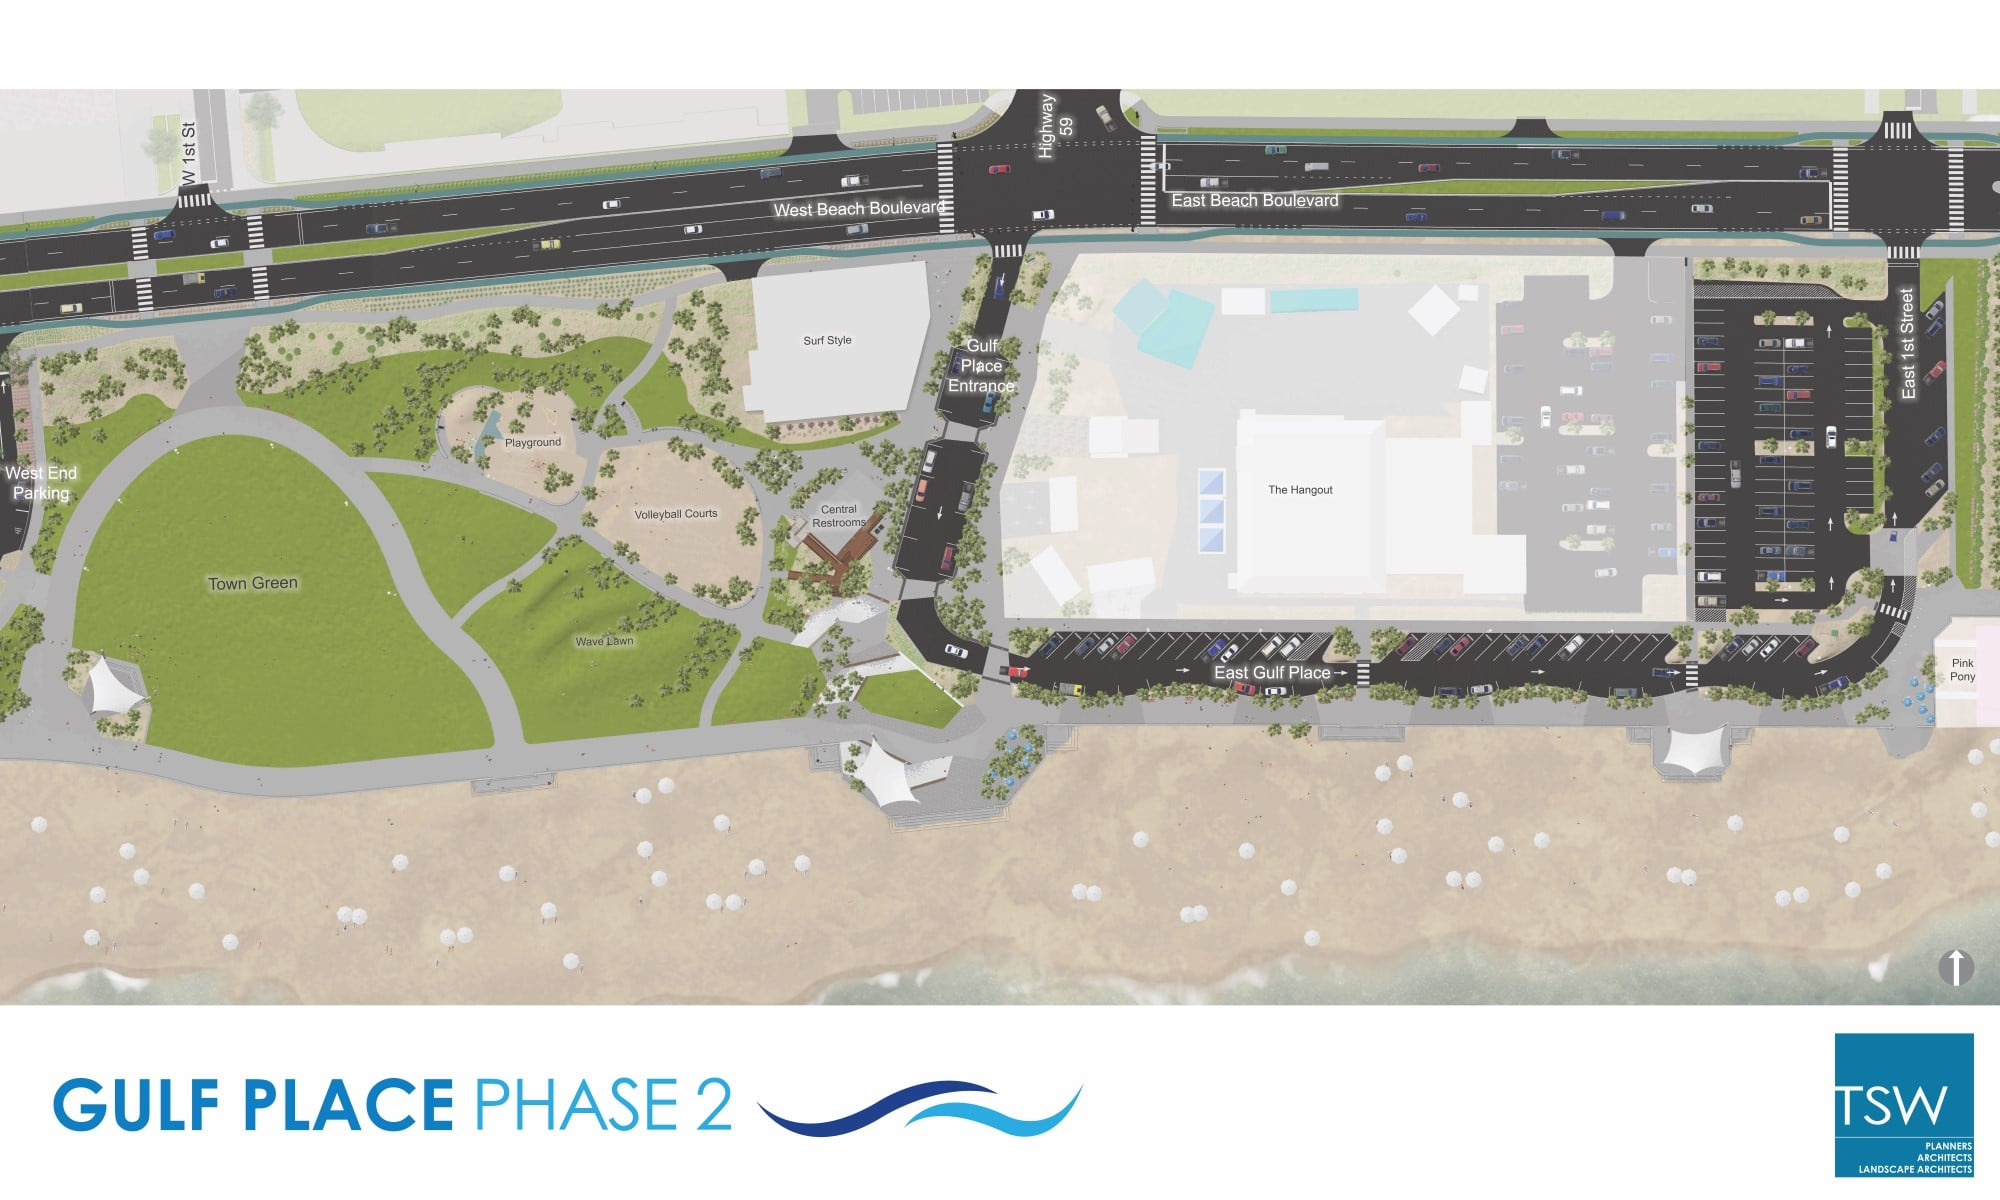 TSW 2017.09.06-Plan Gulf Shores Begins Phase II of Public Beach Transformation In The News Landscape Architecture Planning Sustainable Design  Habitat Environment Public Private Partnership Public Park Urban Design Southeast complete streets resilient coastal waterfront Waterfront Development Revitalization Low Impact Development Gulf Place TSW redevelopment   TSW